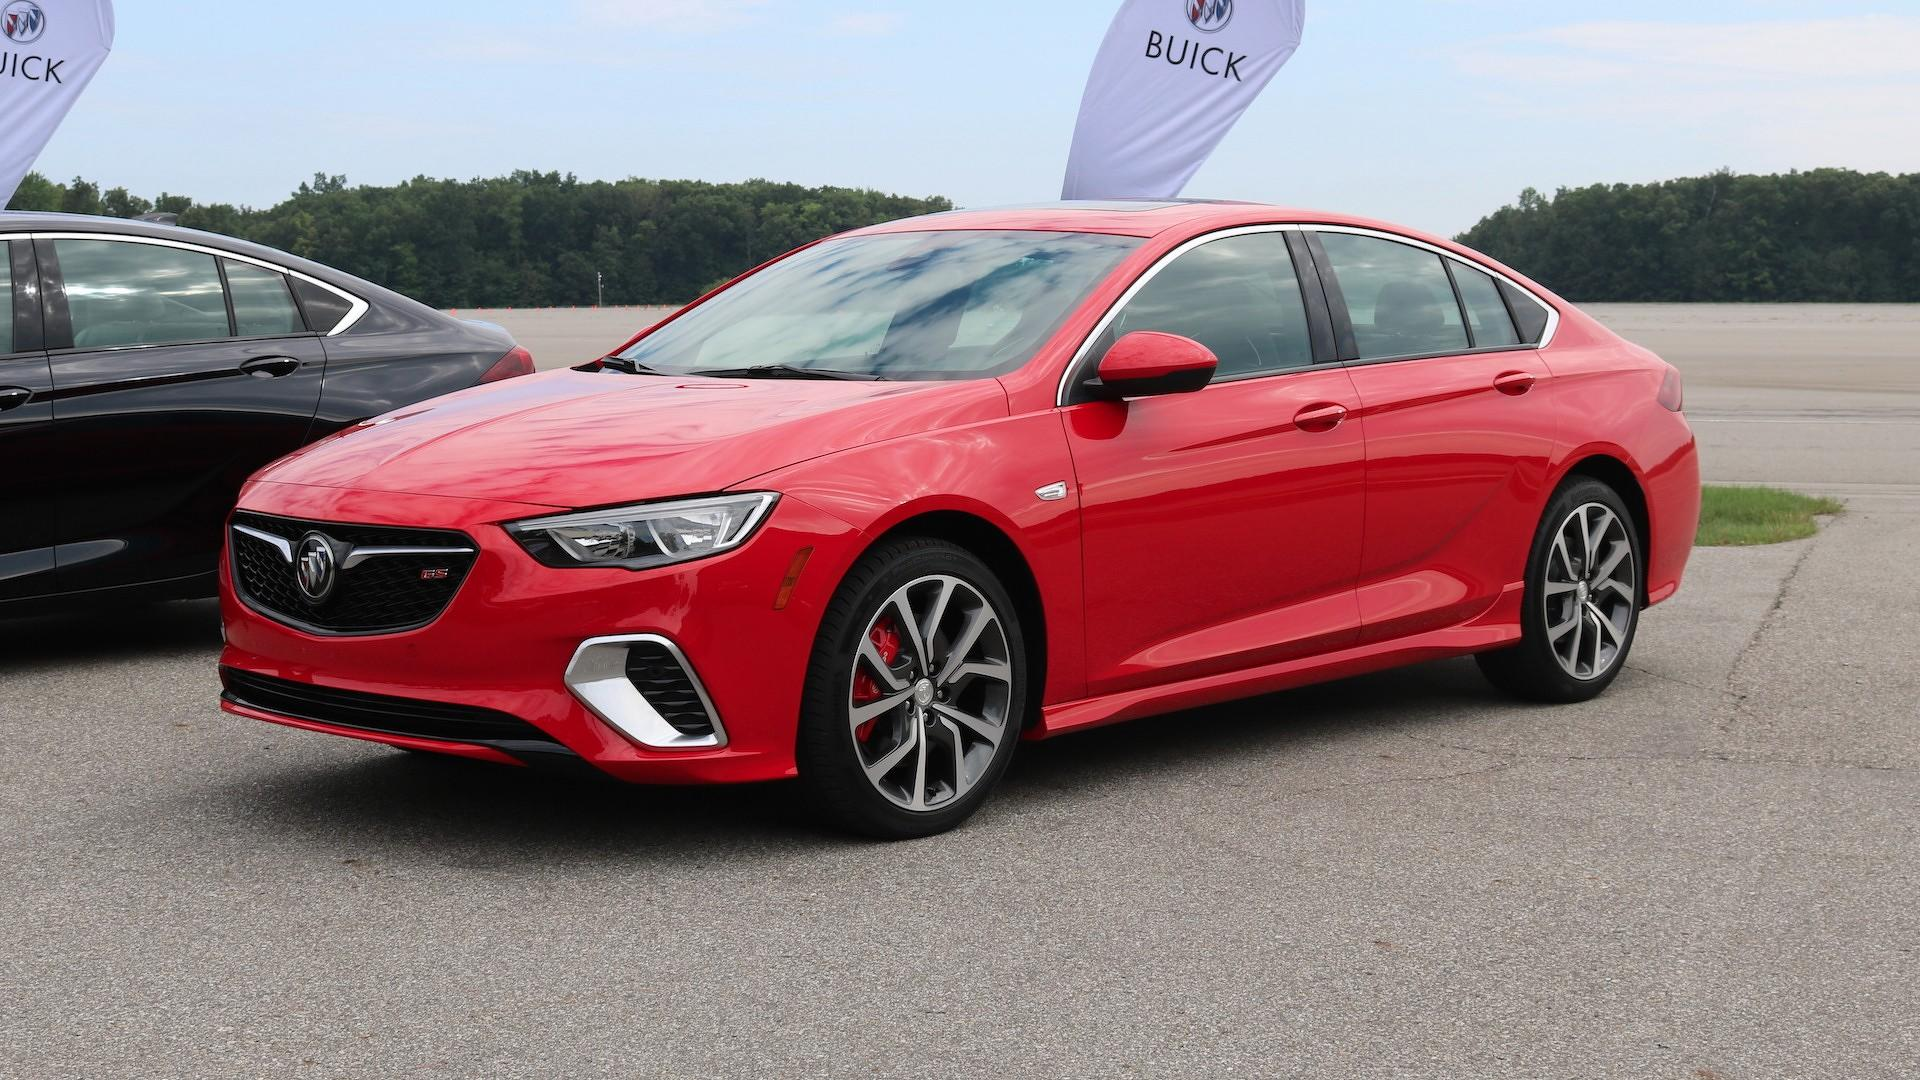 2018 buick regal gs revealed with 310hp awd for 39 990. Black Bedroom Furniture Sets. Home Design Ideas